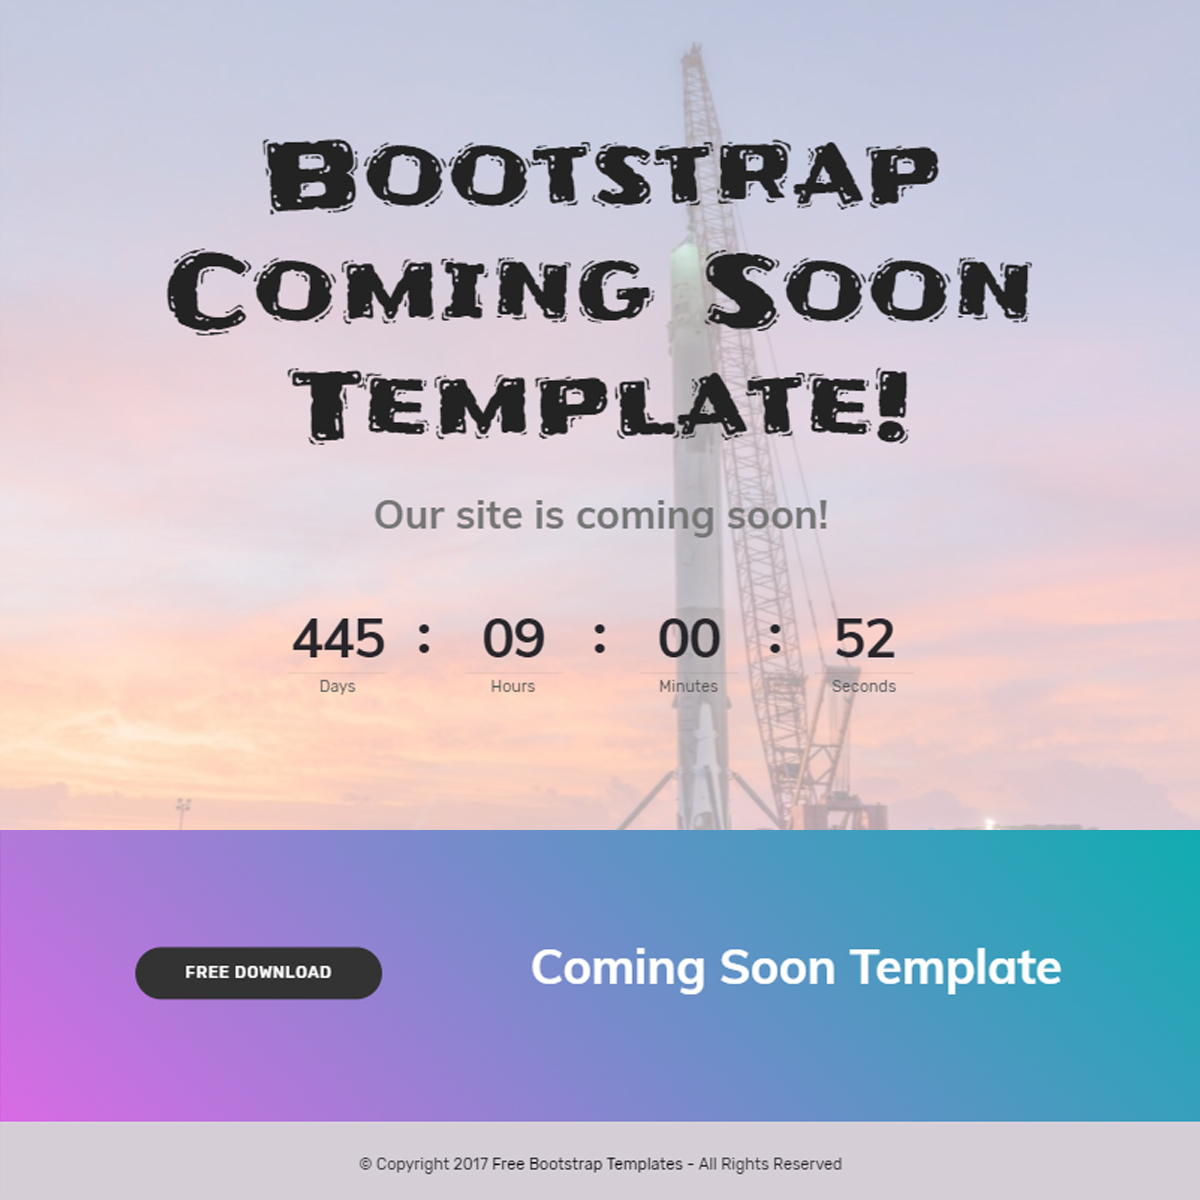 Responsive Bootstrap Coming Soon Templates